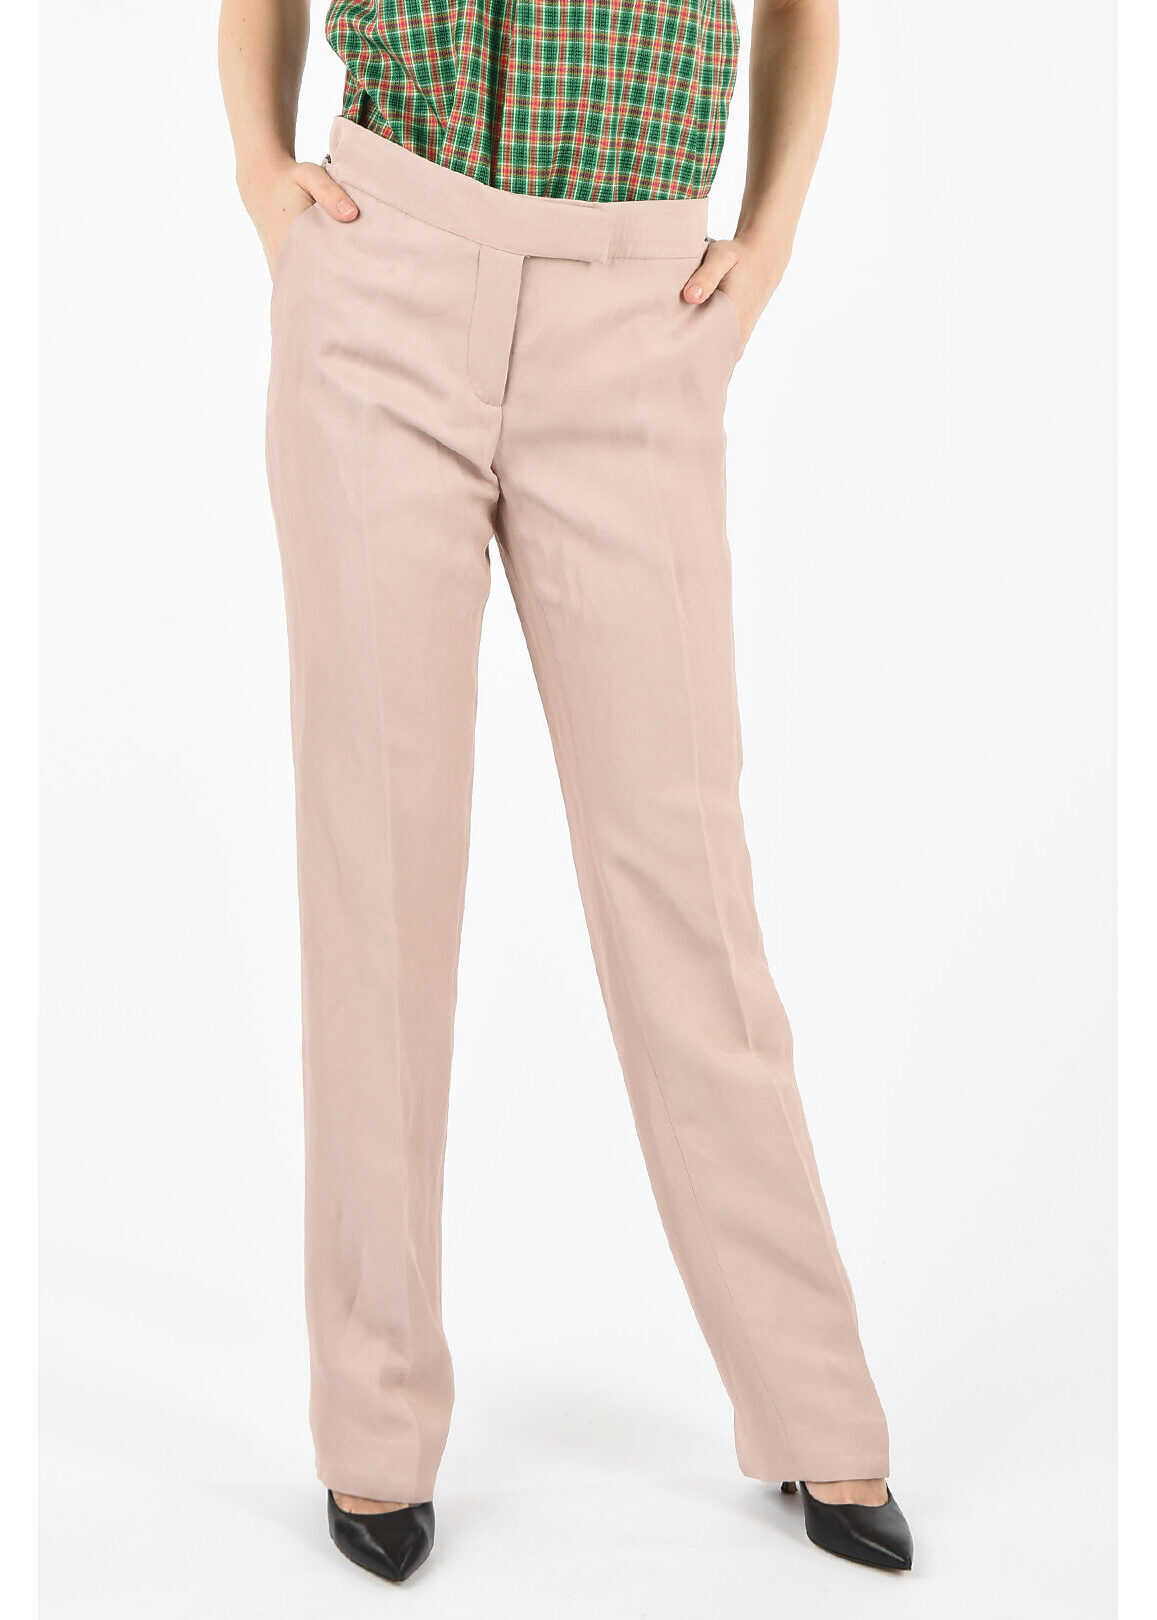 Tom Ford slim fit single pleat pants PINK